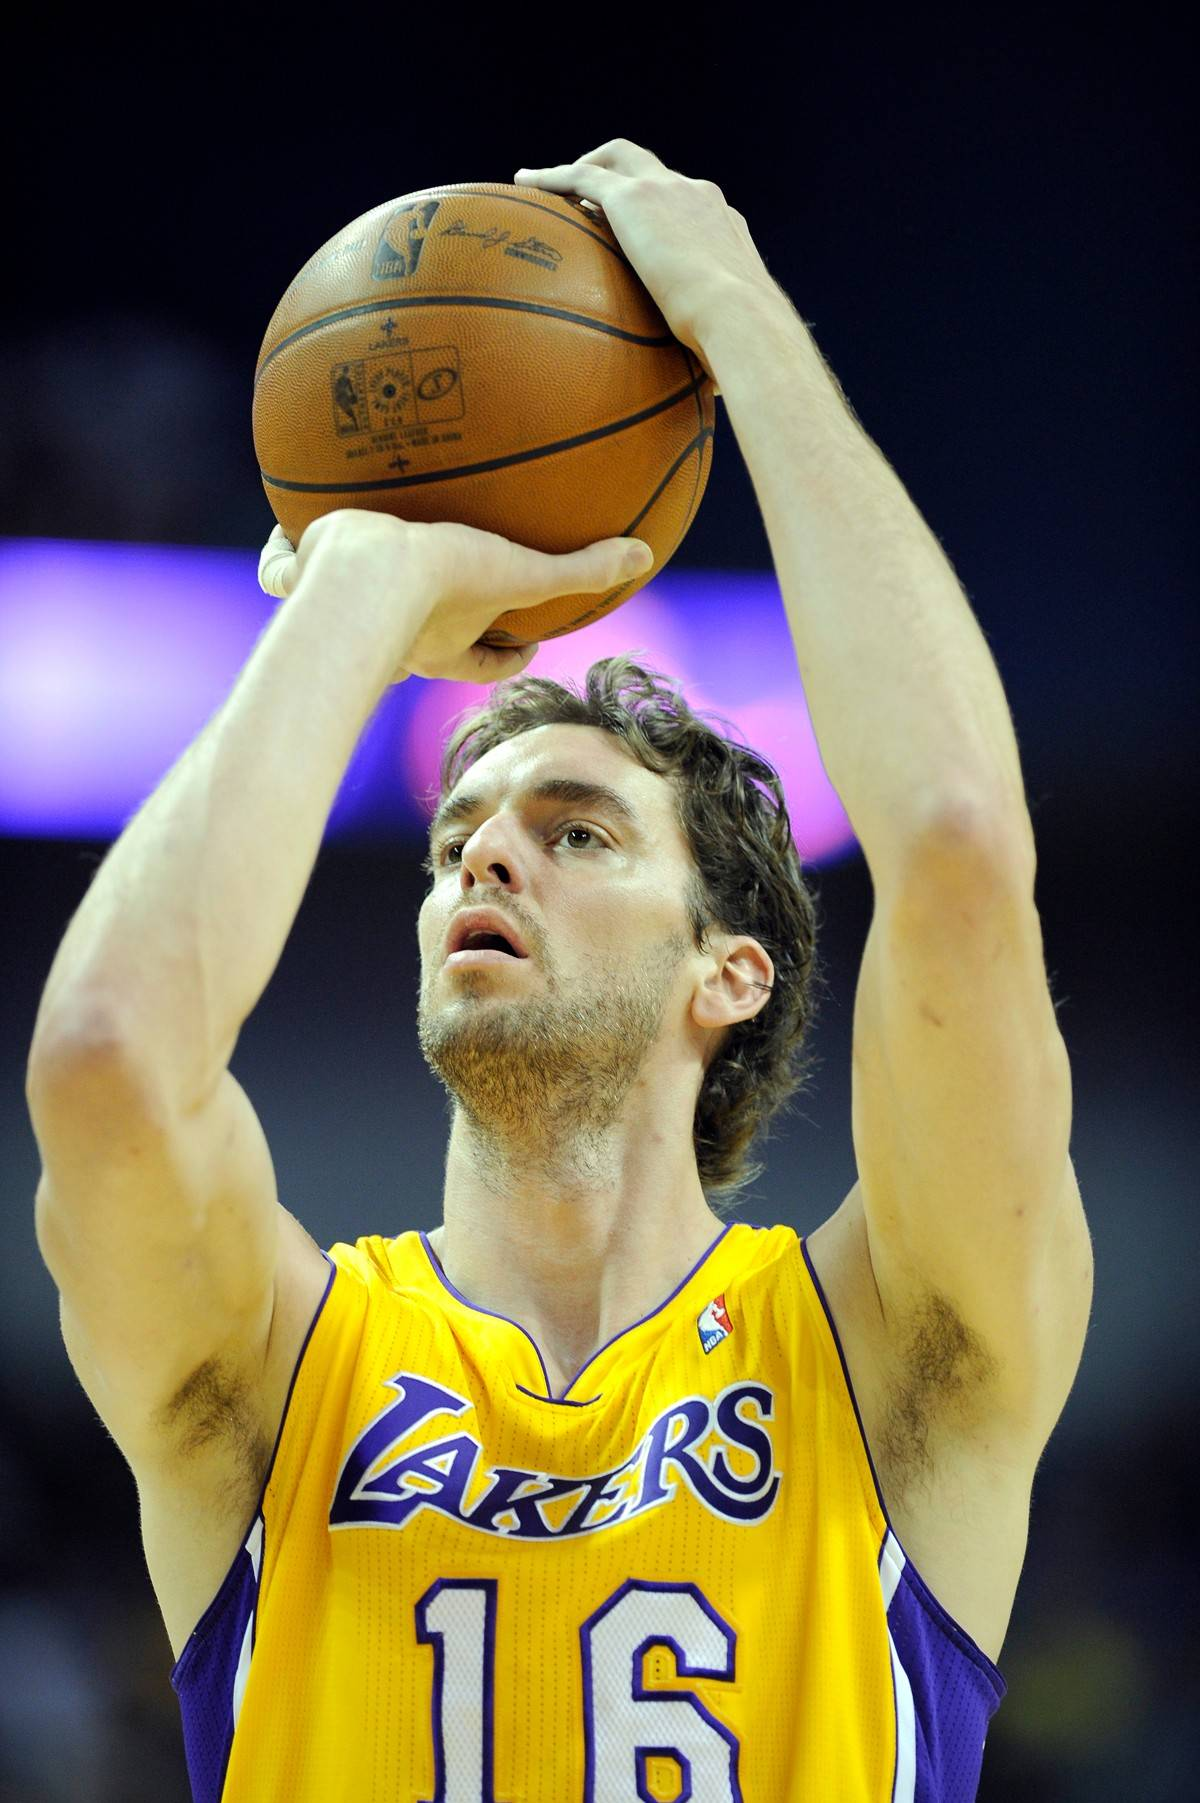 Los Angeles Lakers power forward Pau Gasol of Spain